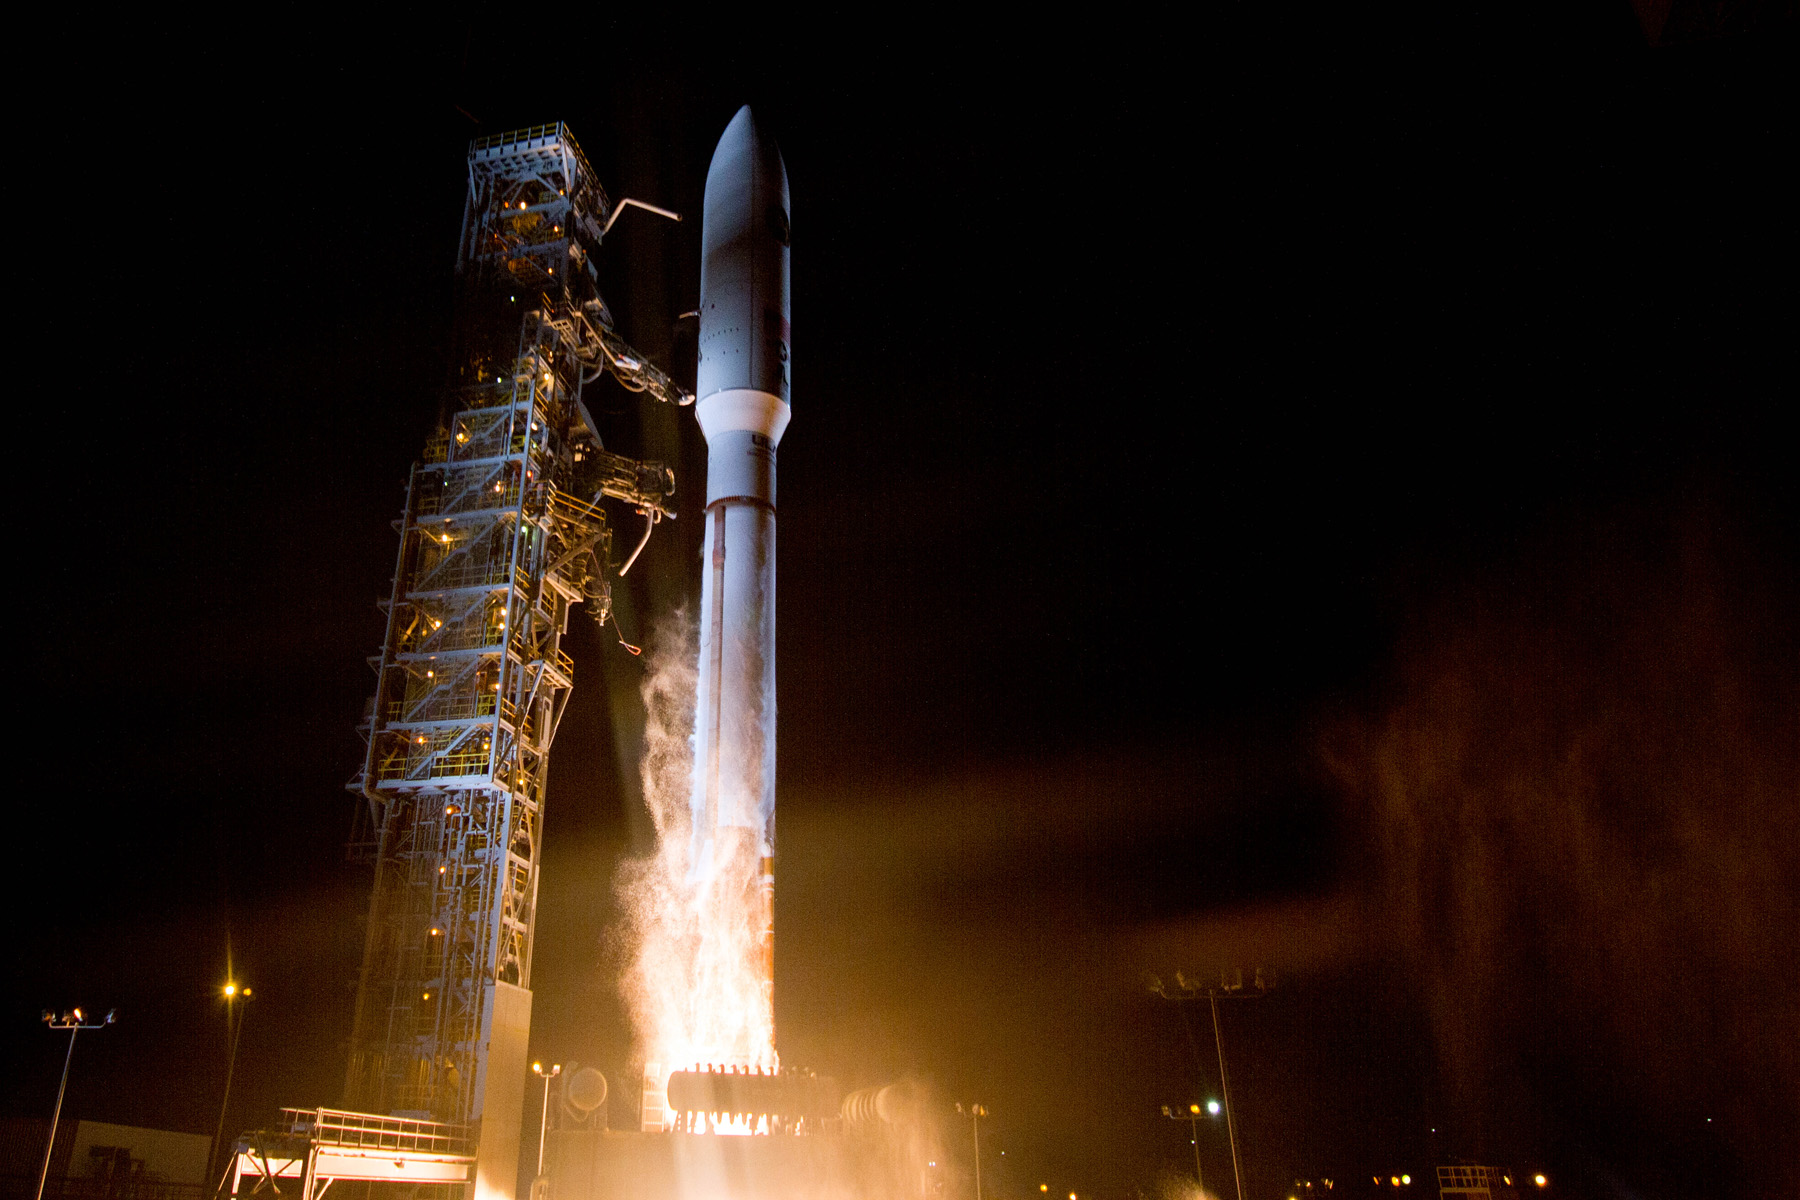 Top-Secret US Spy Satellite Launches into Orbit (Photos)